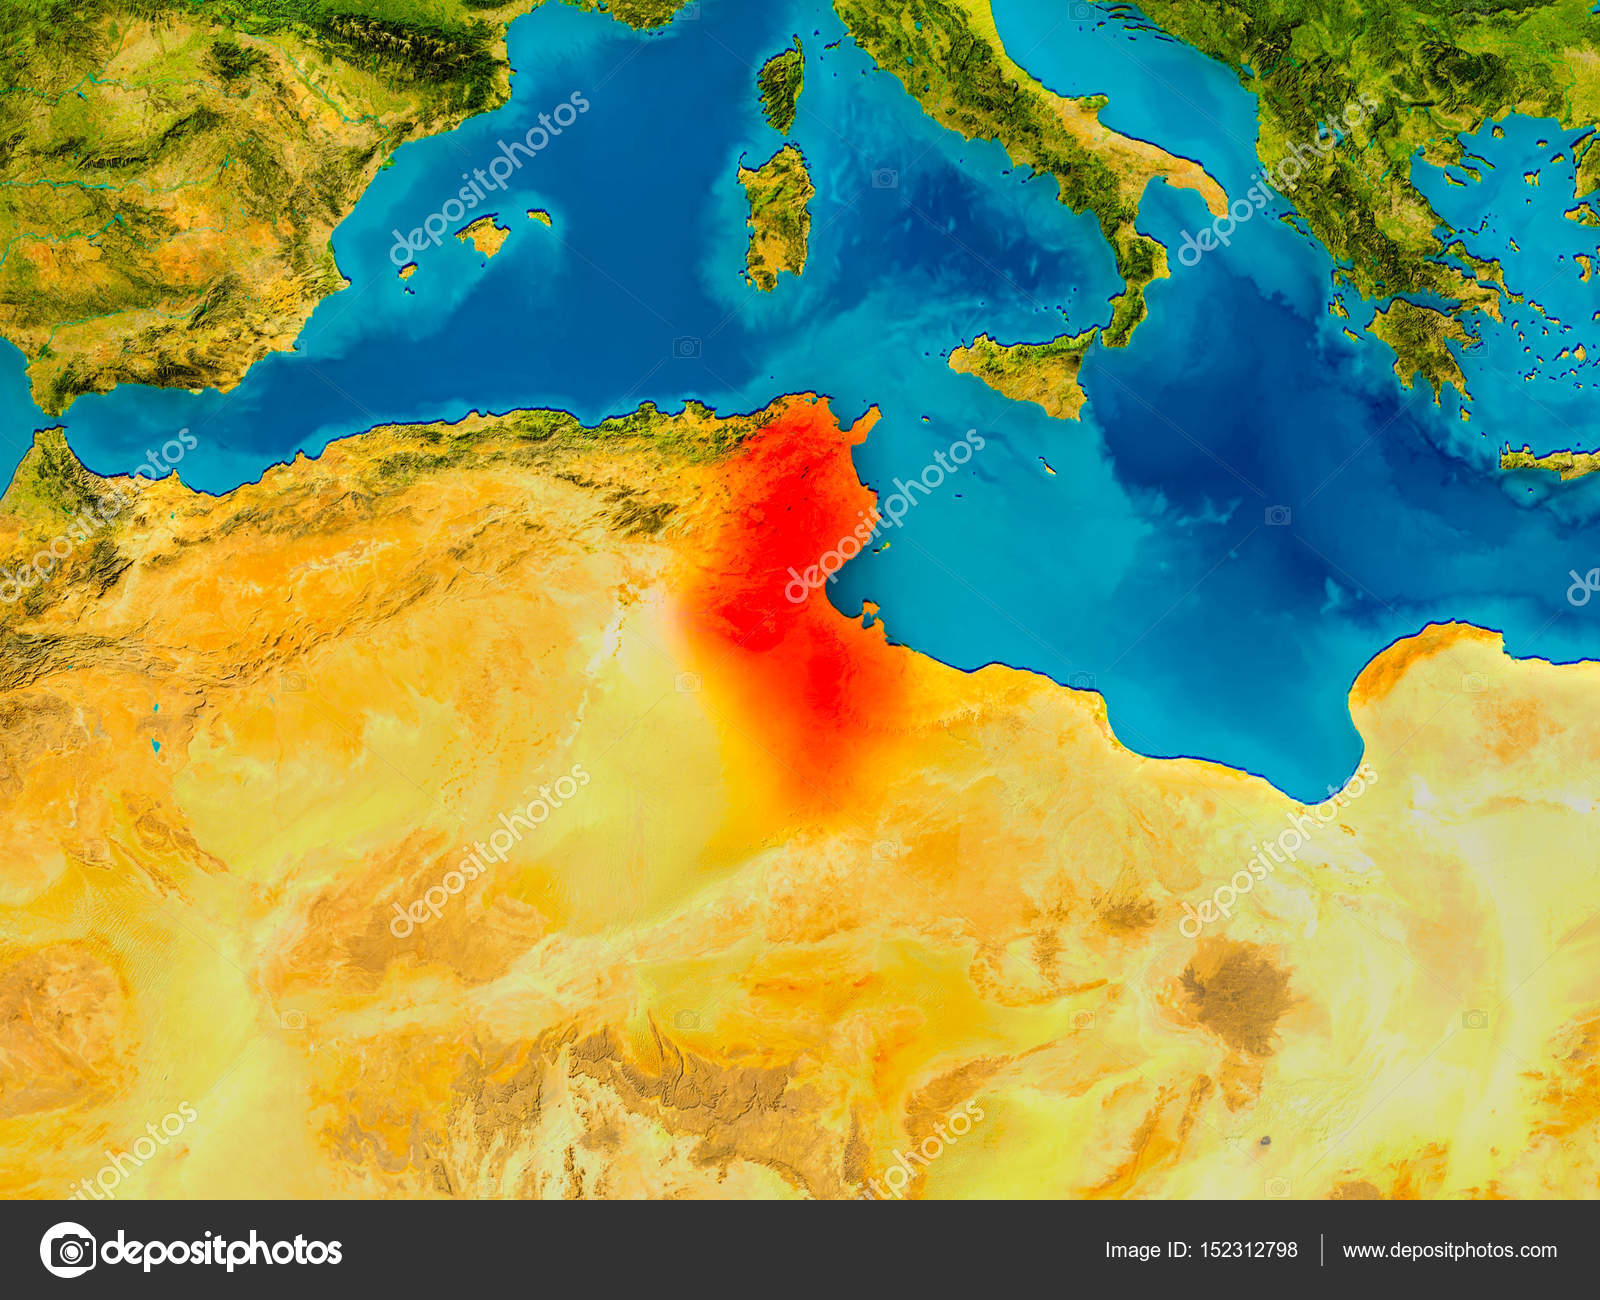 Picture of: Tunisia On Physical Map Stock Photo C Tom Griger 152312798